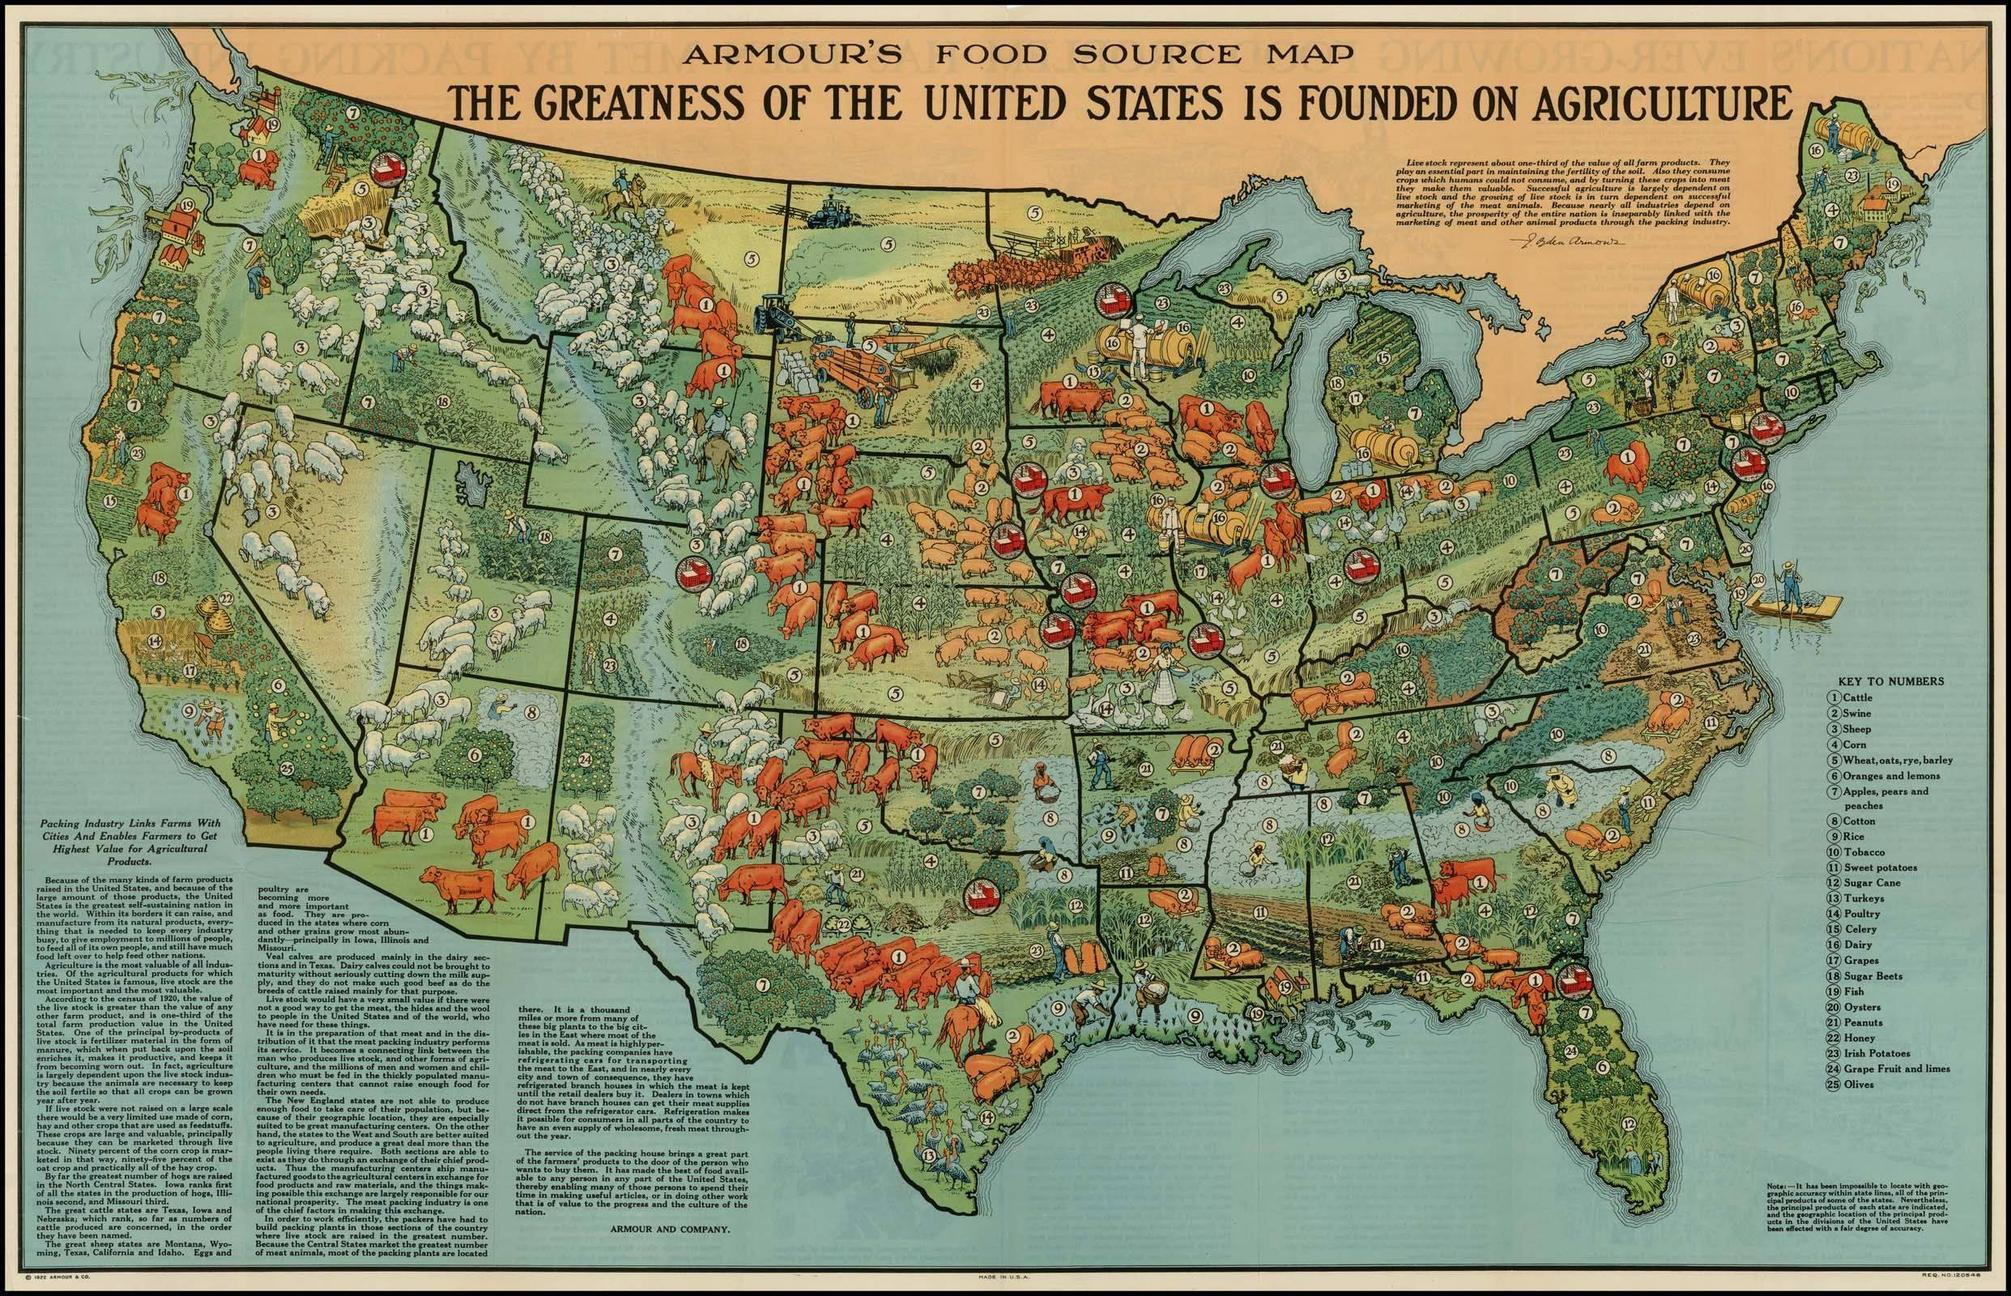 Maps That Explain Food In America Voxcom - Map of america with states